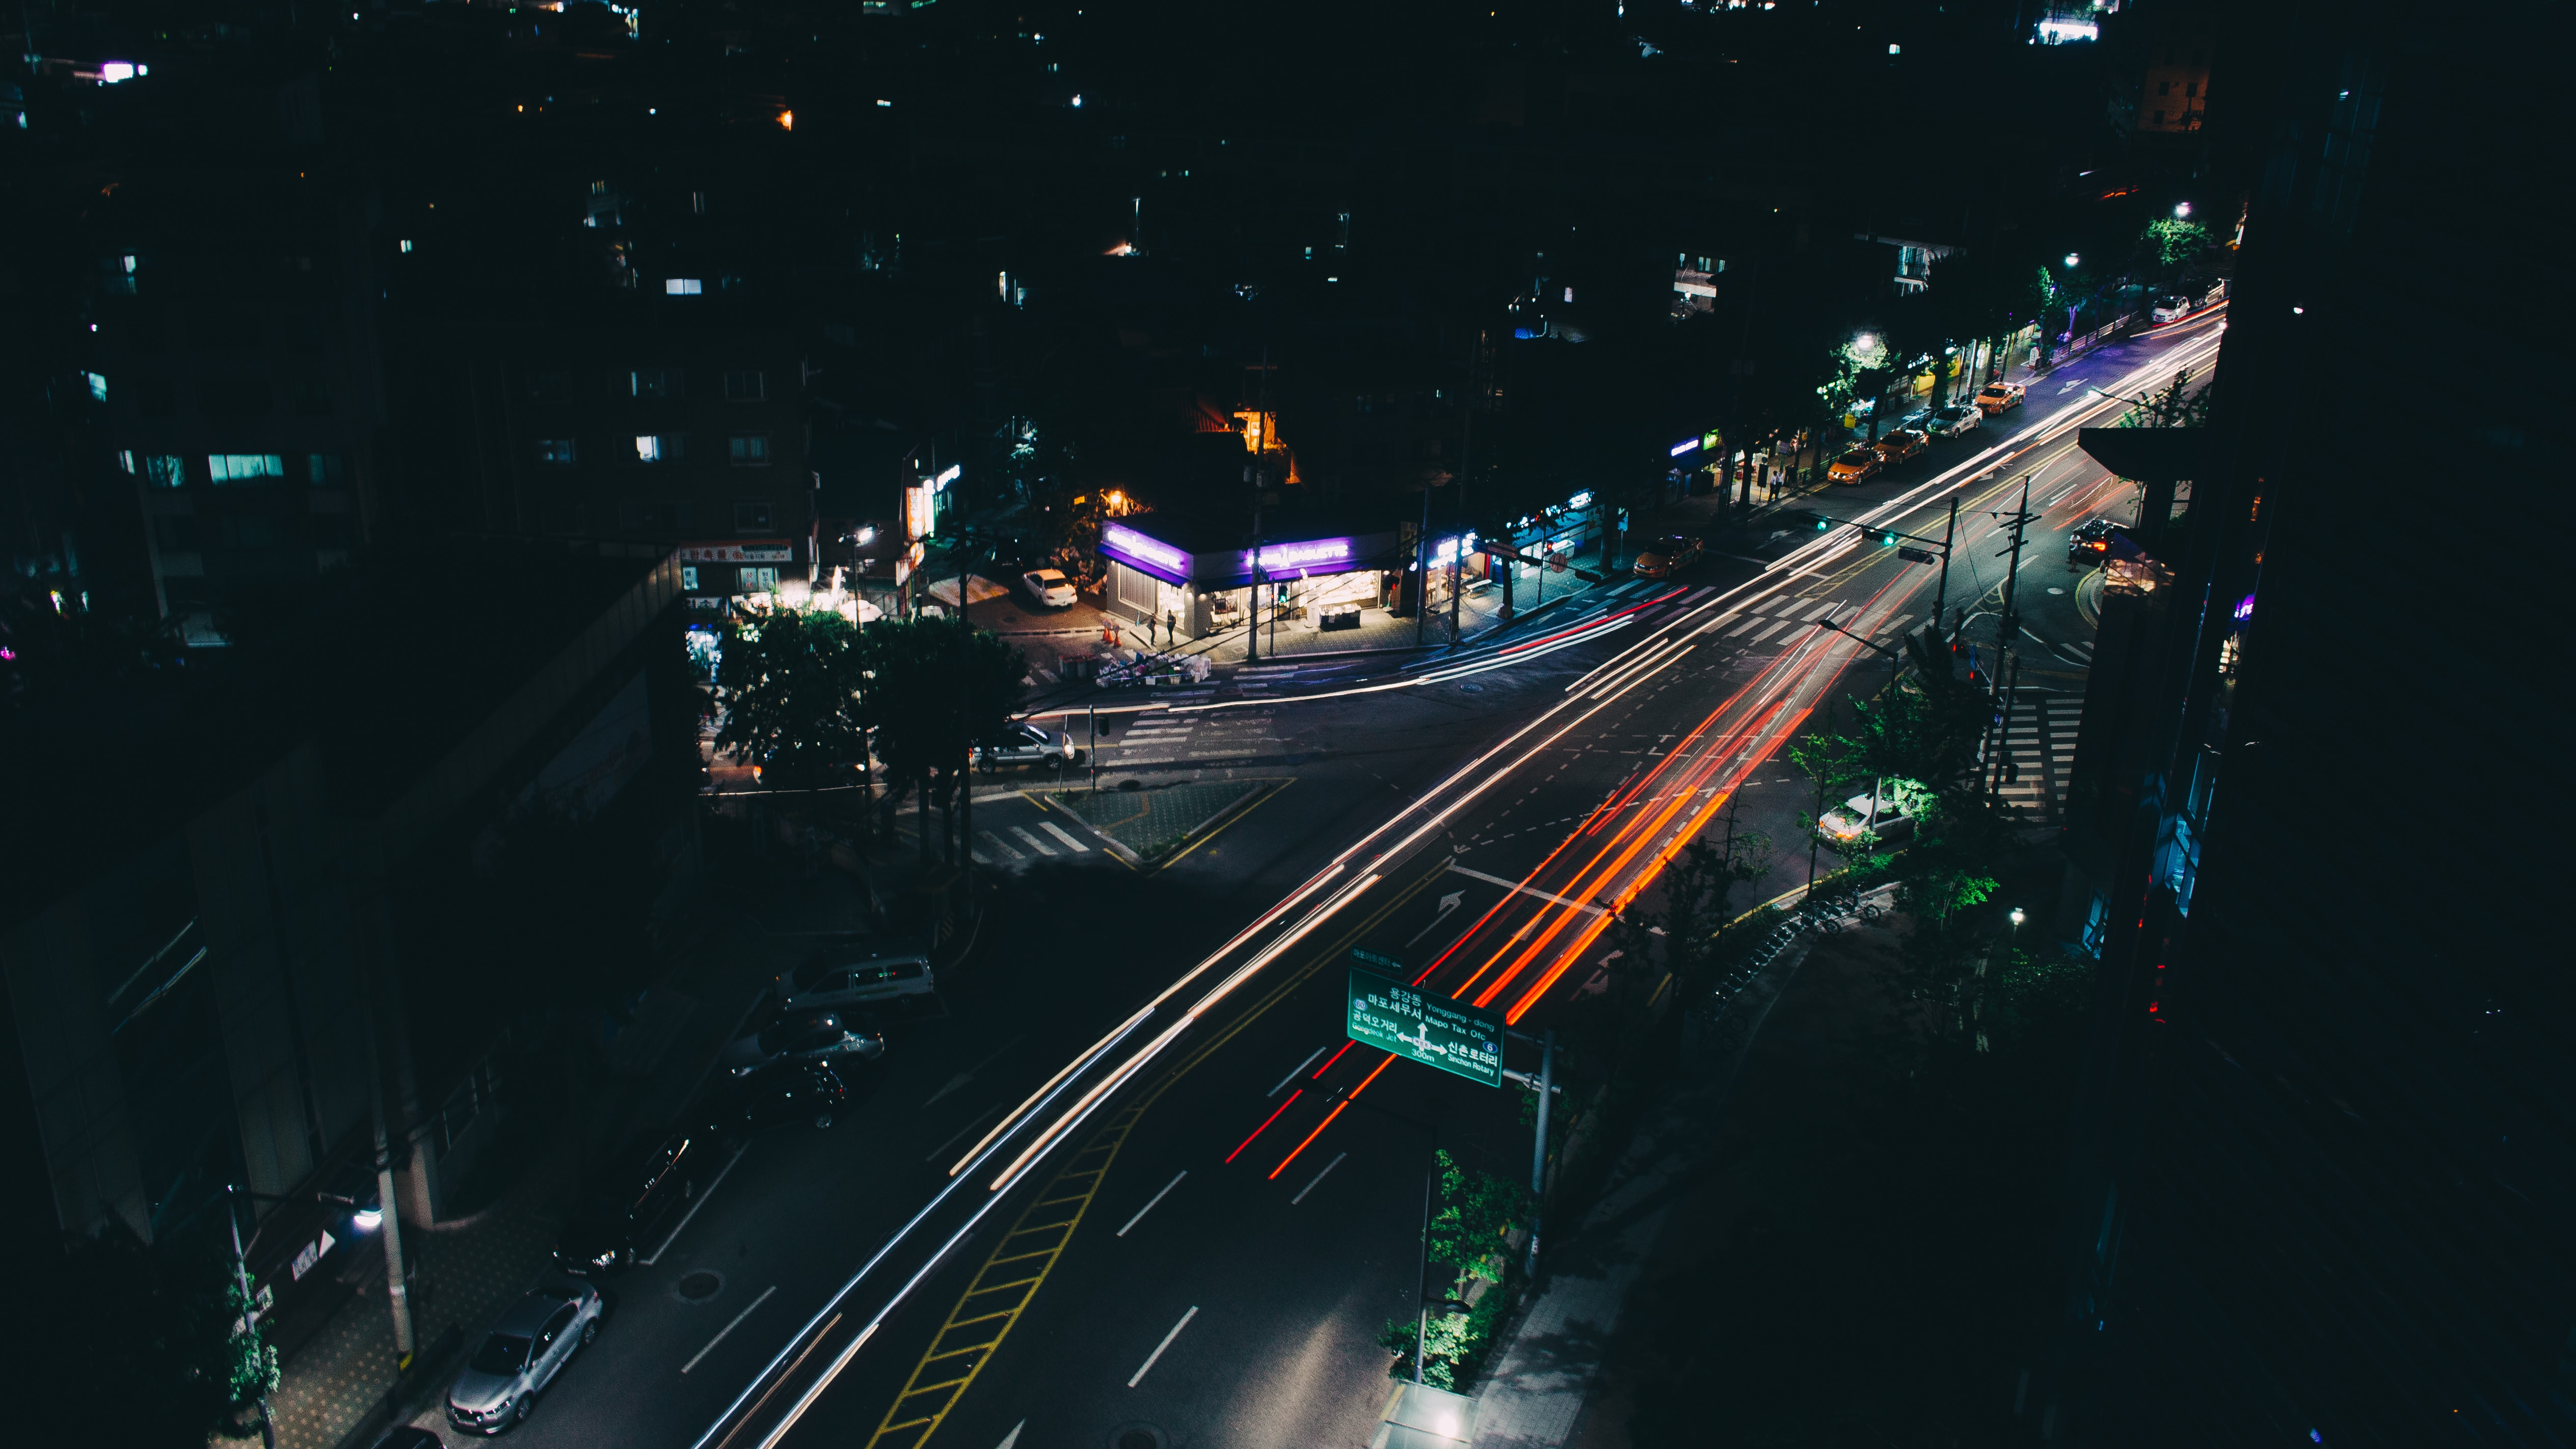 timelapse photography of vehicle passing on road at nighttime